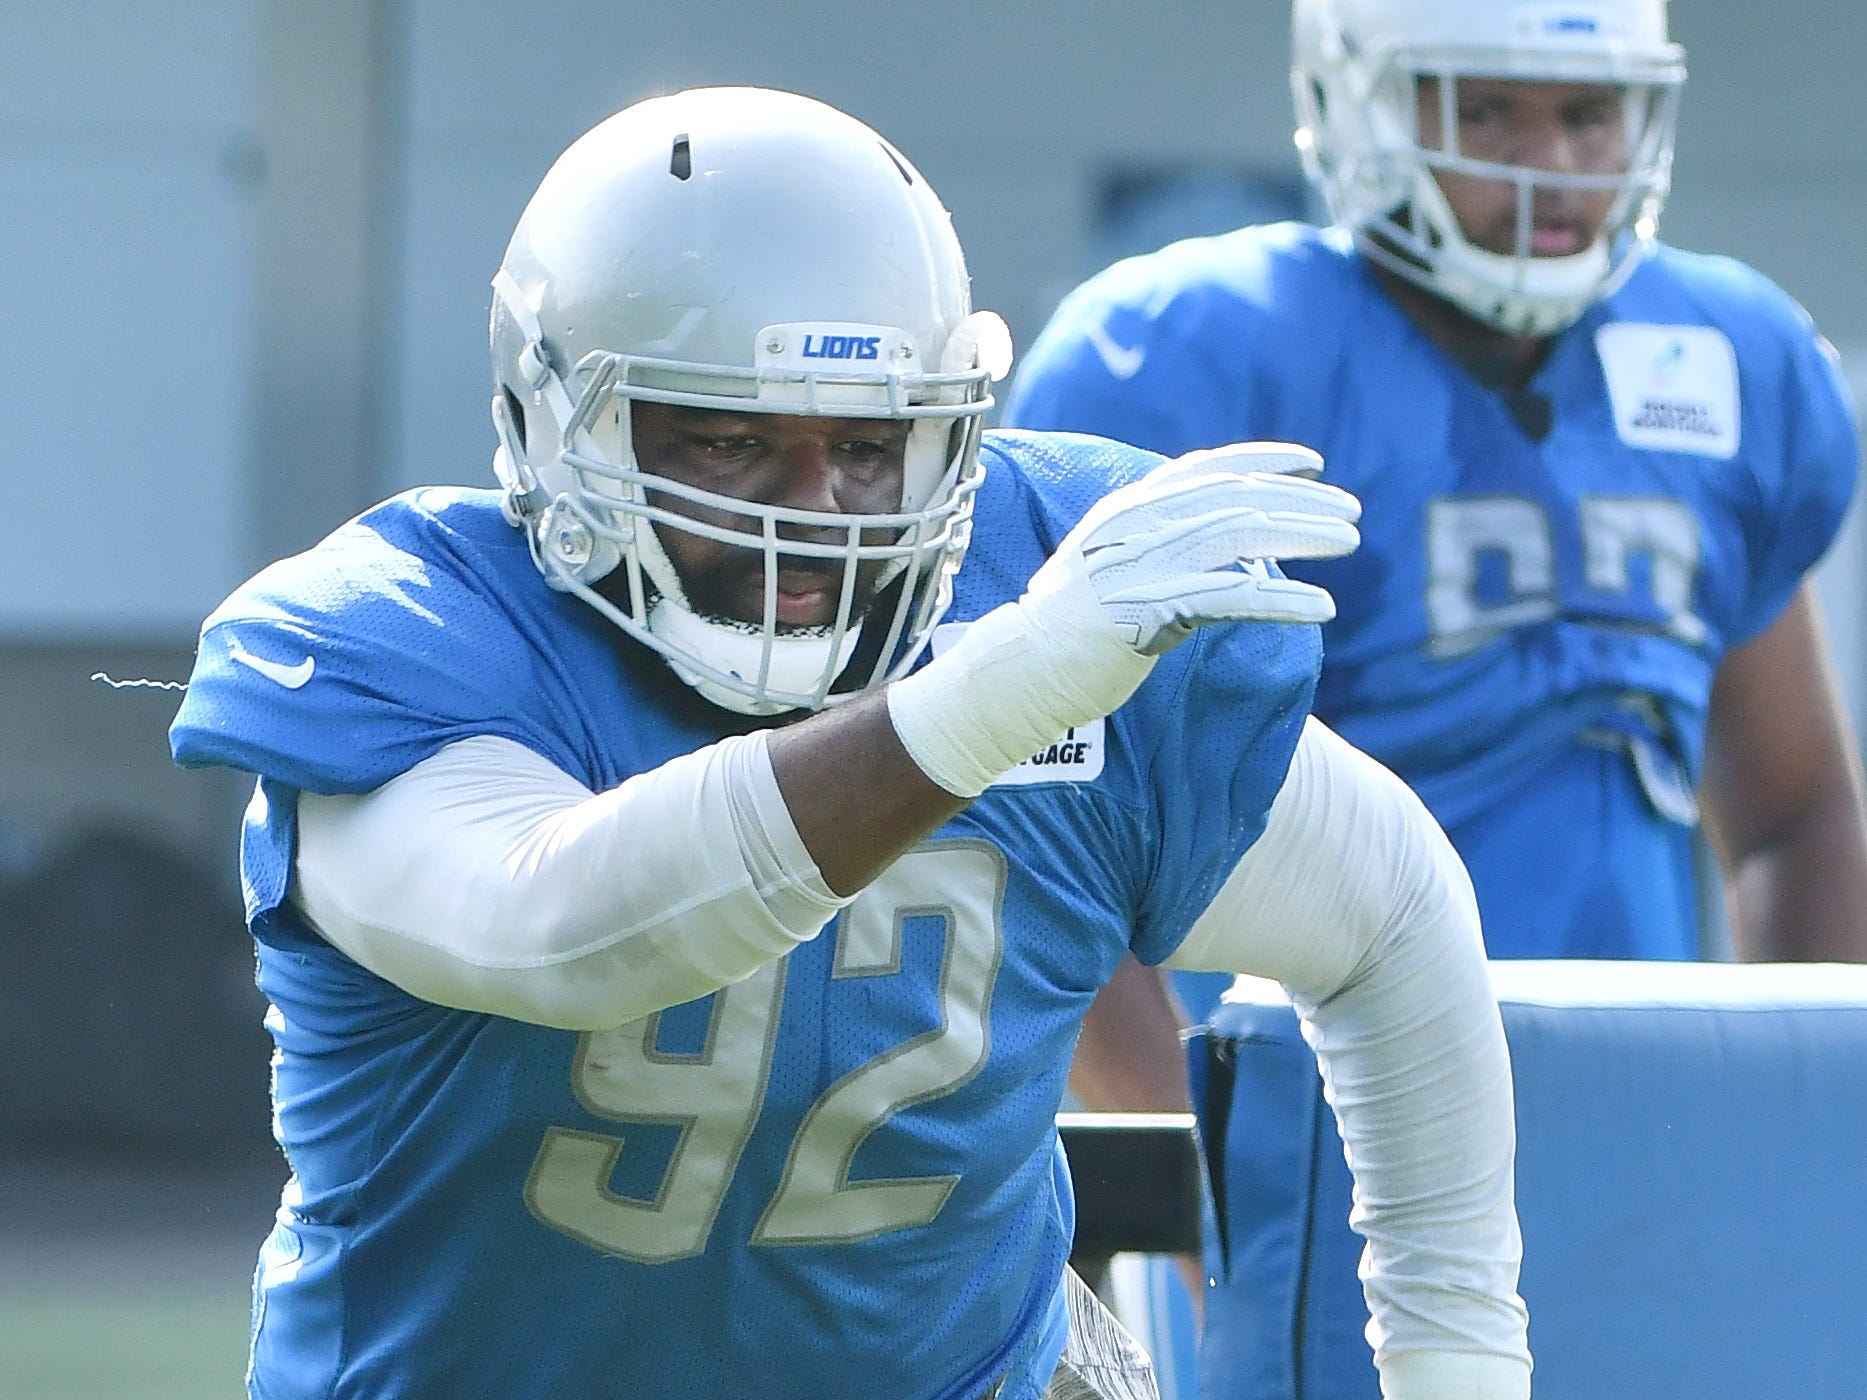 Lions defensive tackle Sylvester Williams works around the pylons.